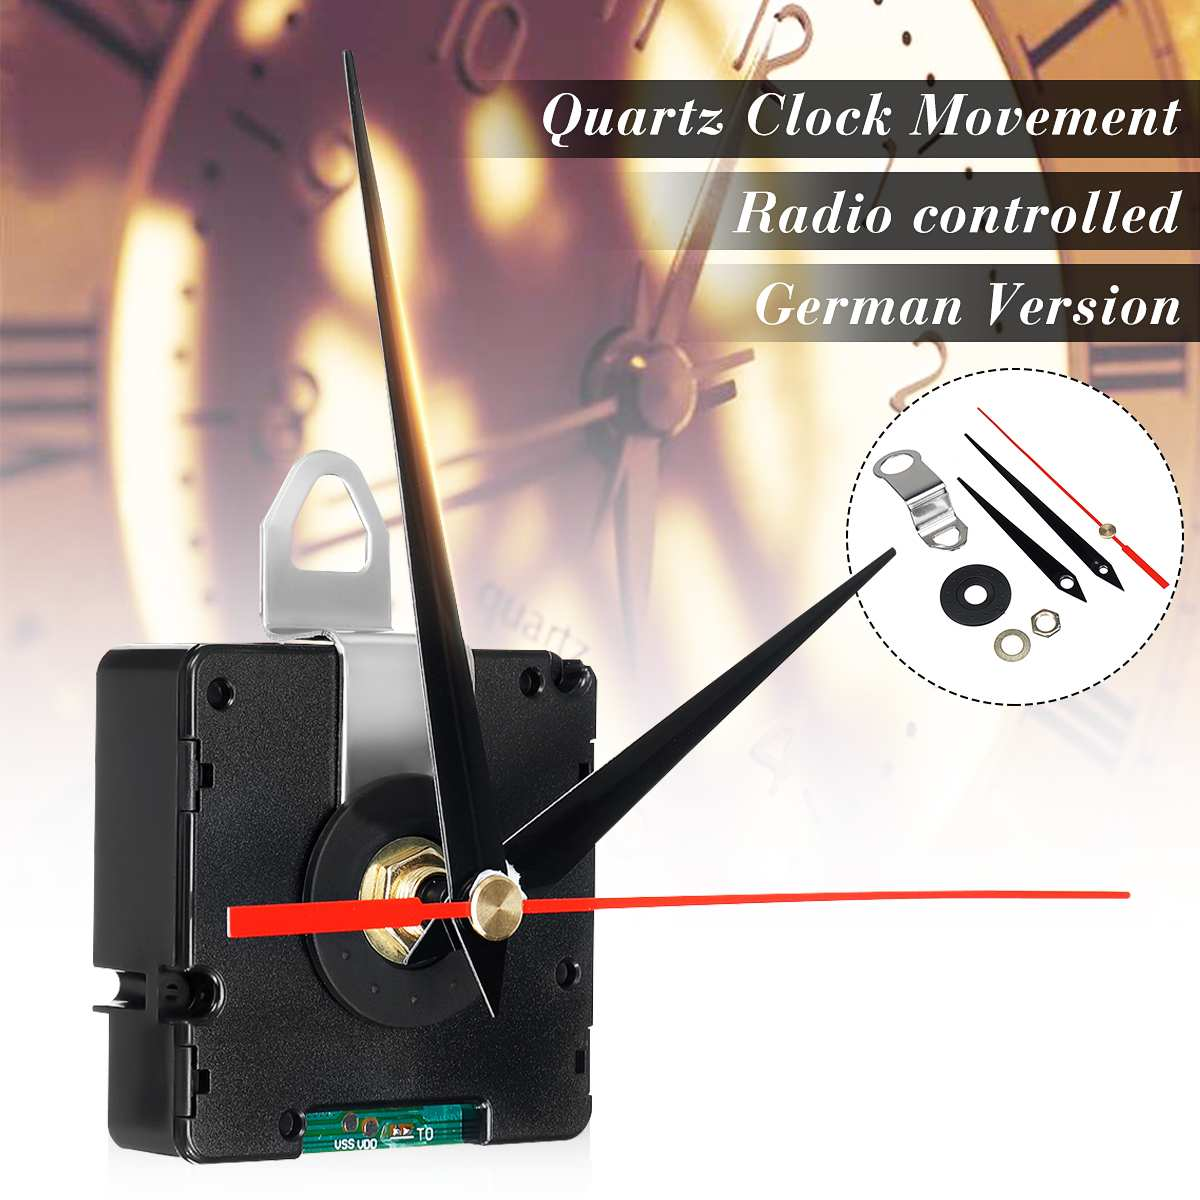 Atomic Radio Controlled Silent Clock Movement DIY Kit Germany DCF Signal HR9312 Mode